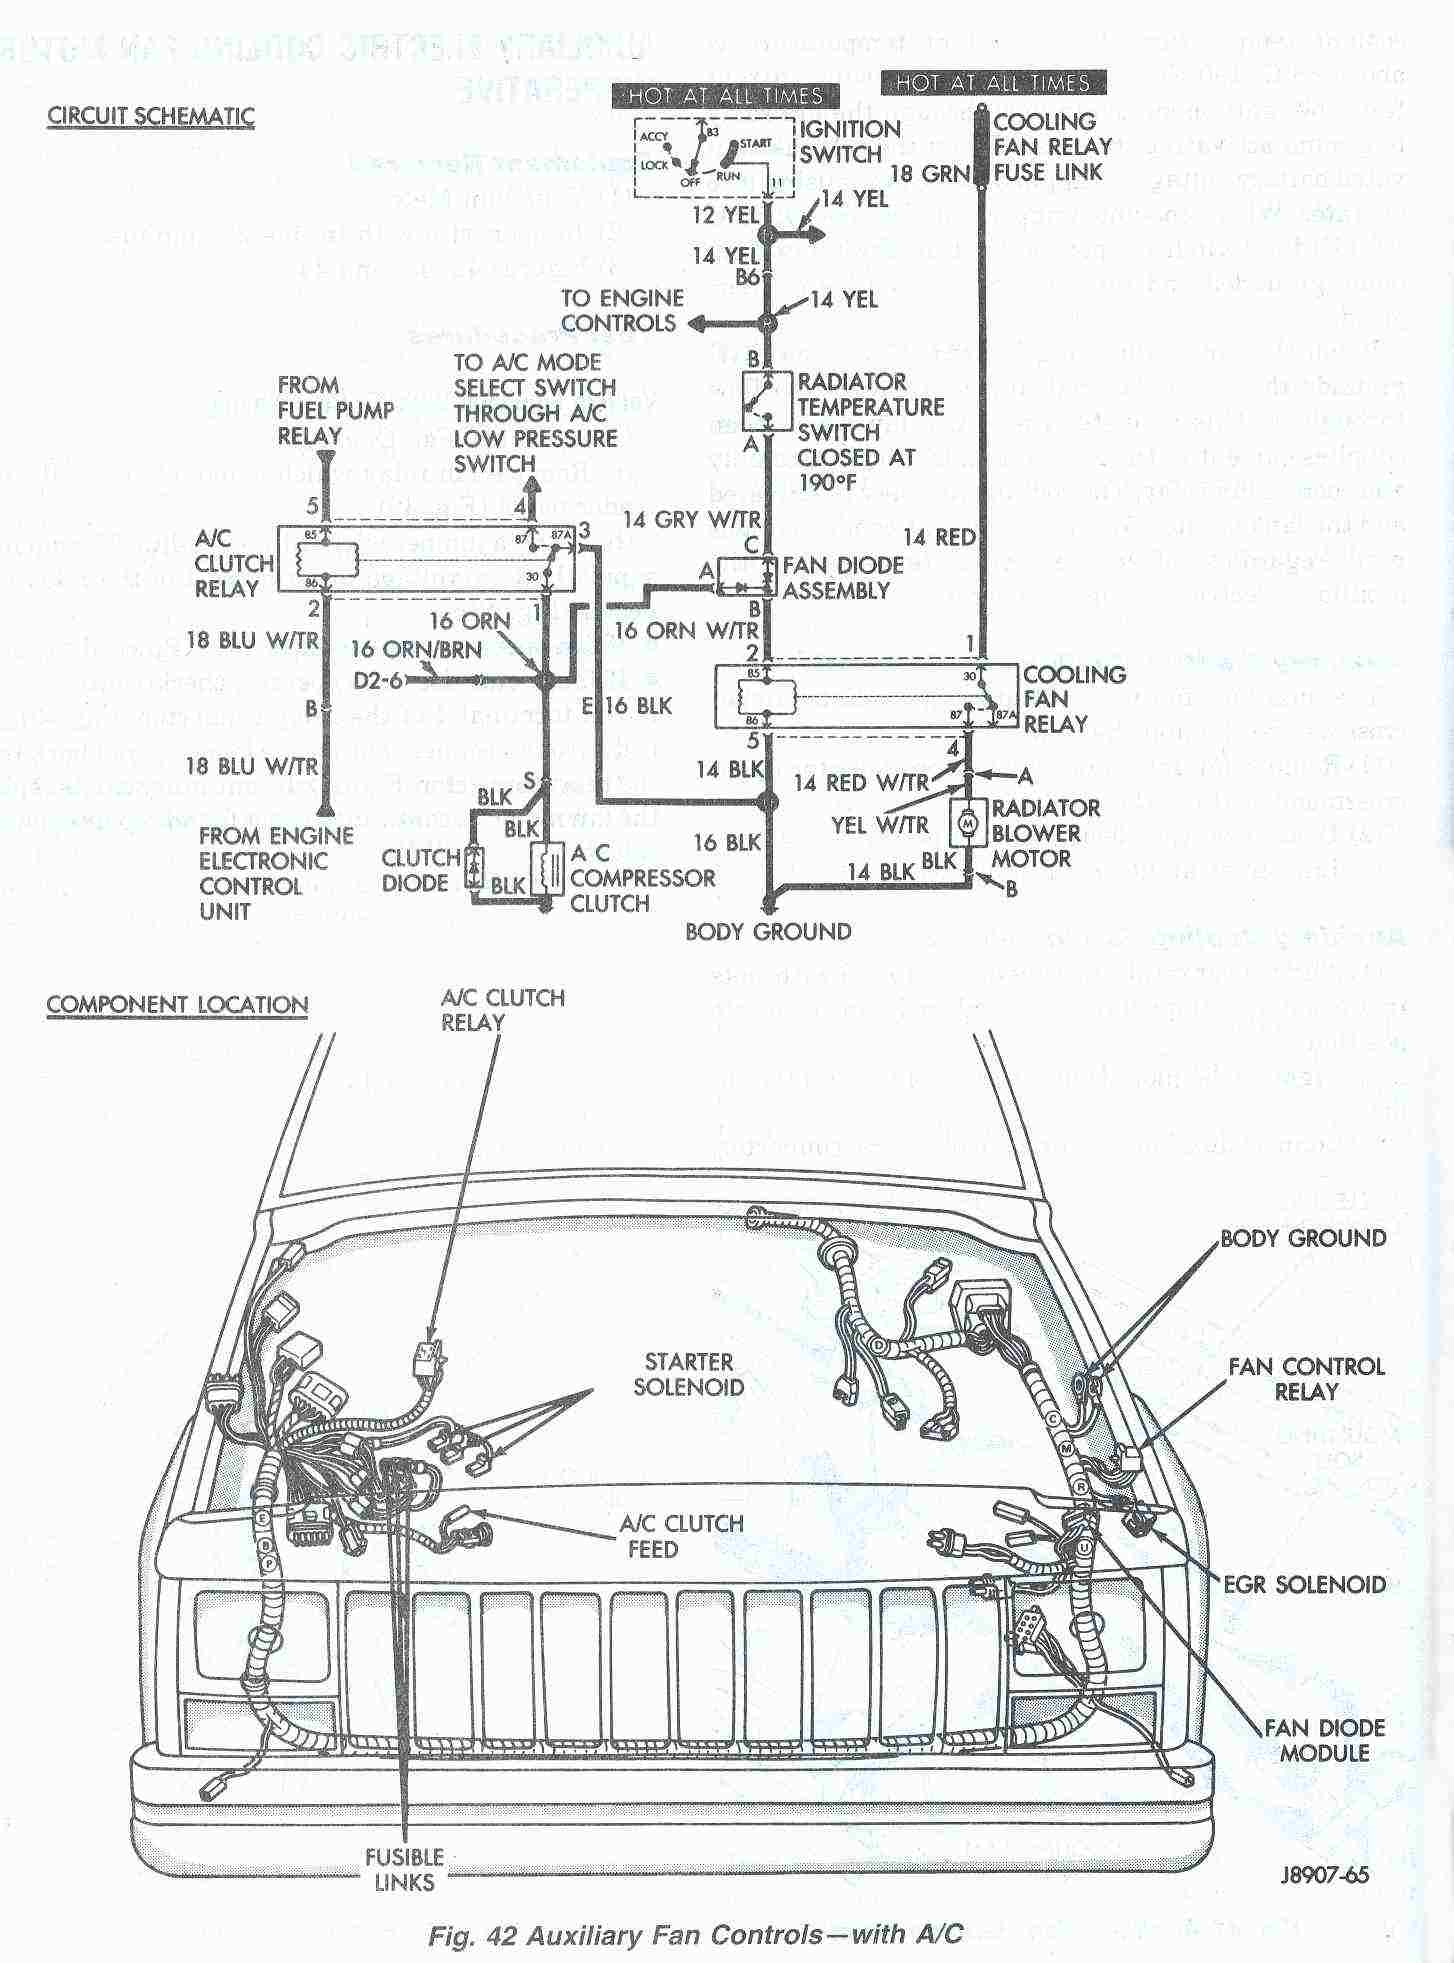 Auxiliary_Fan_Schematic_Fig_42 jeep comanche wiring diagram jeep electrical wiring schematic 1998 jeep grand cherokee wiring harness at n-0.co